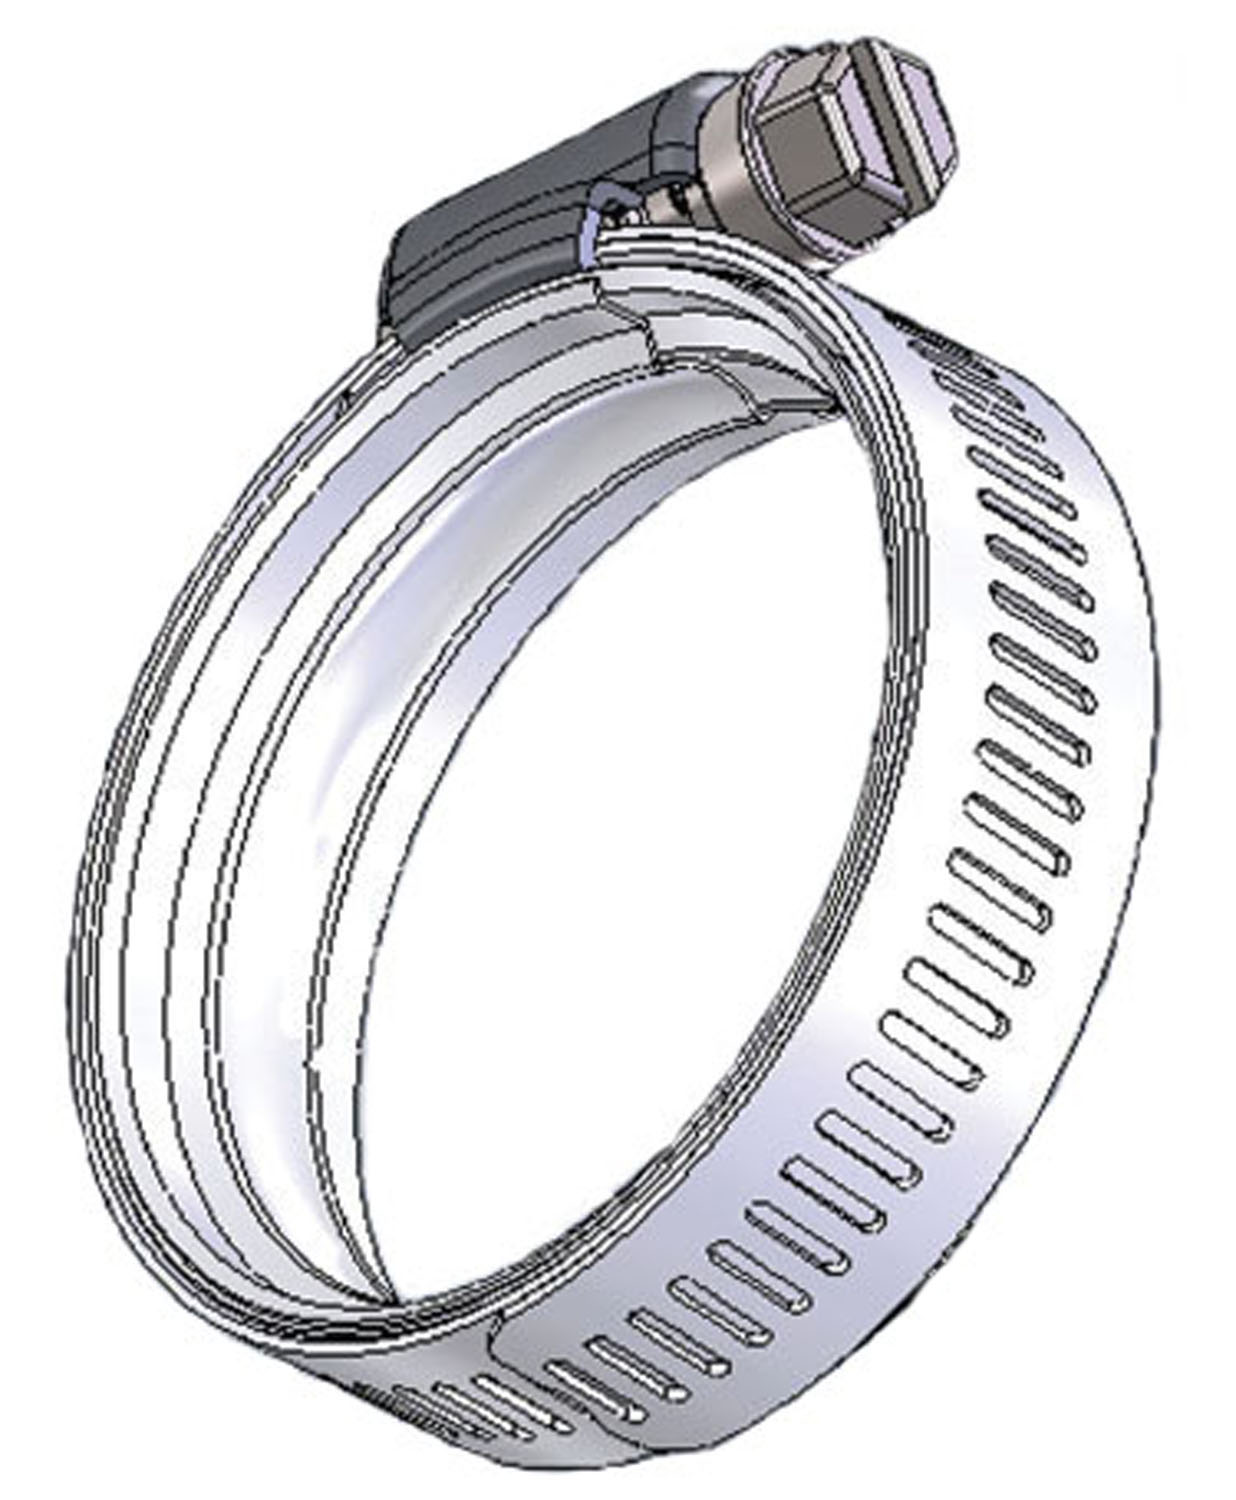 Wave Seal 360™ (Constant Tension) Hose Clamps | DuPage Products Group for Hose Ring Clamp  303mzq